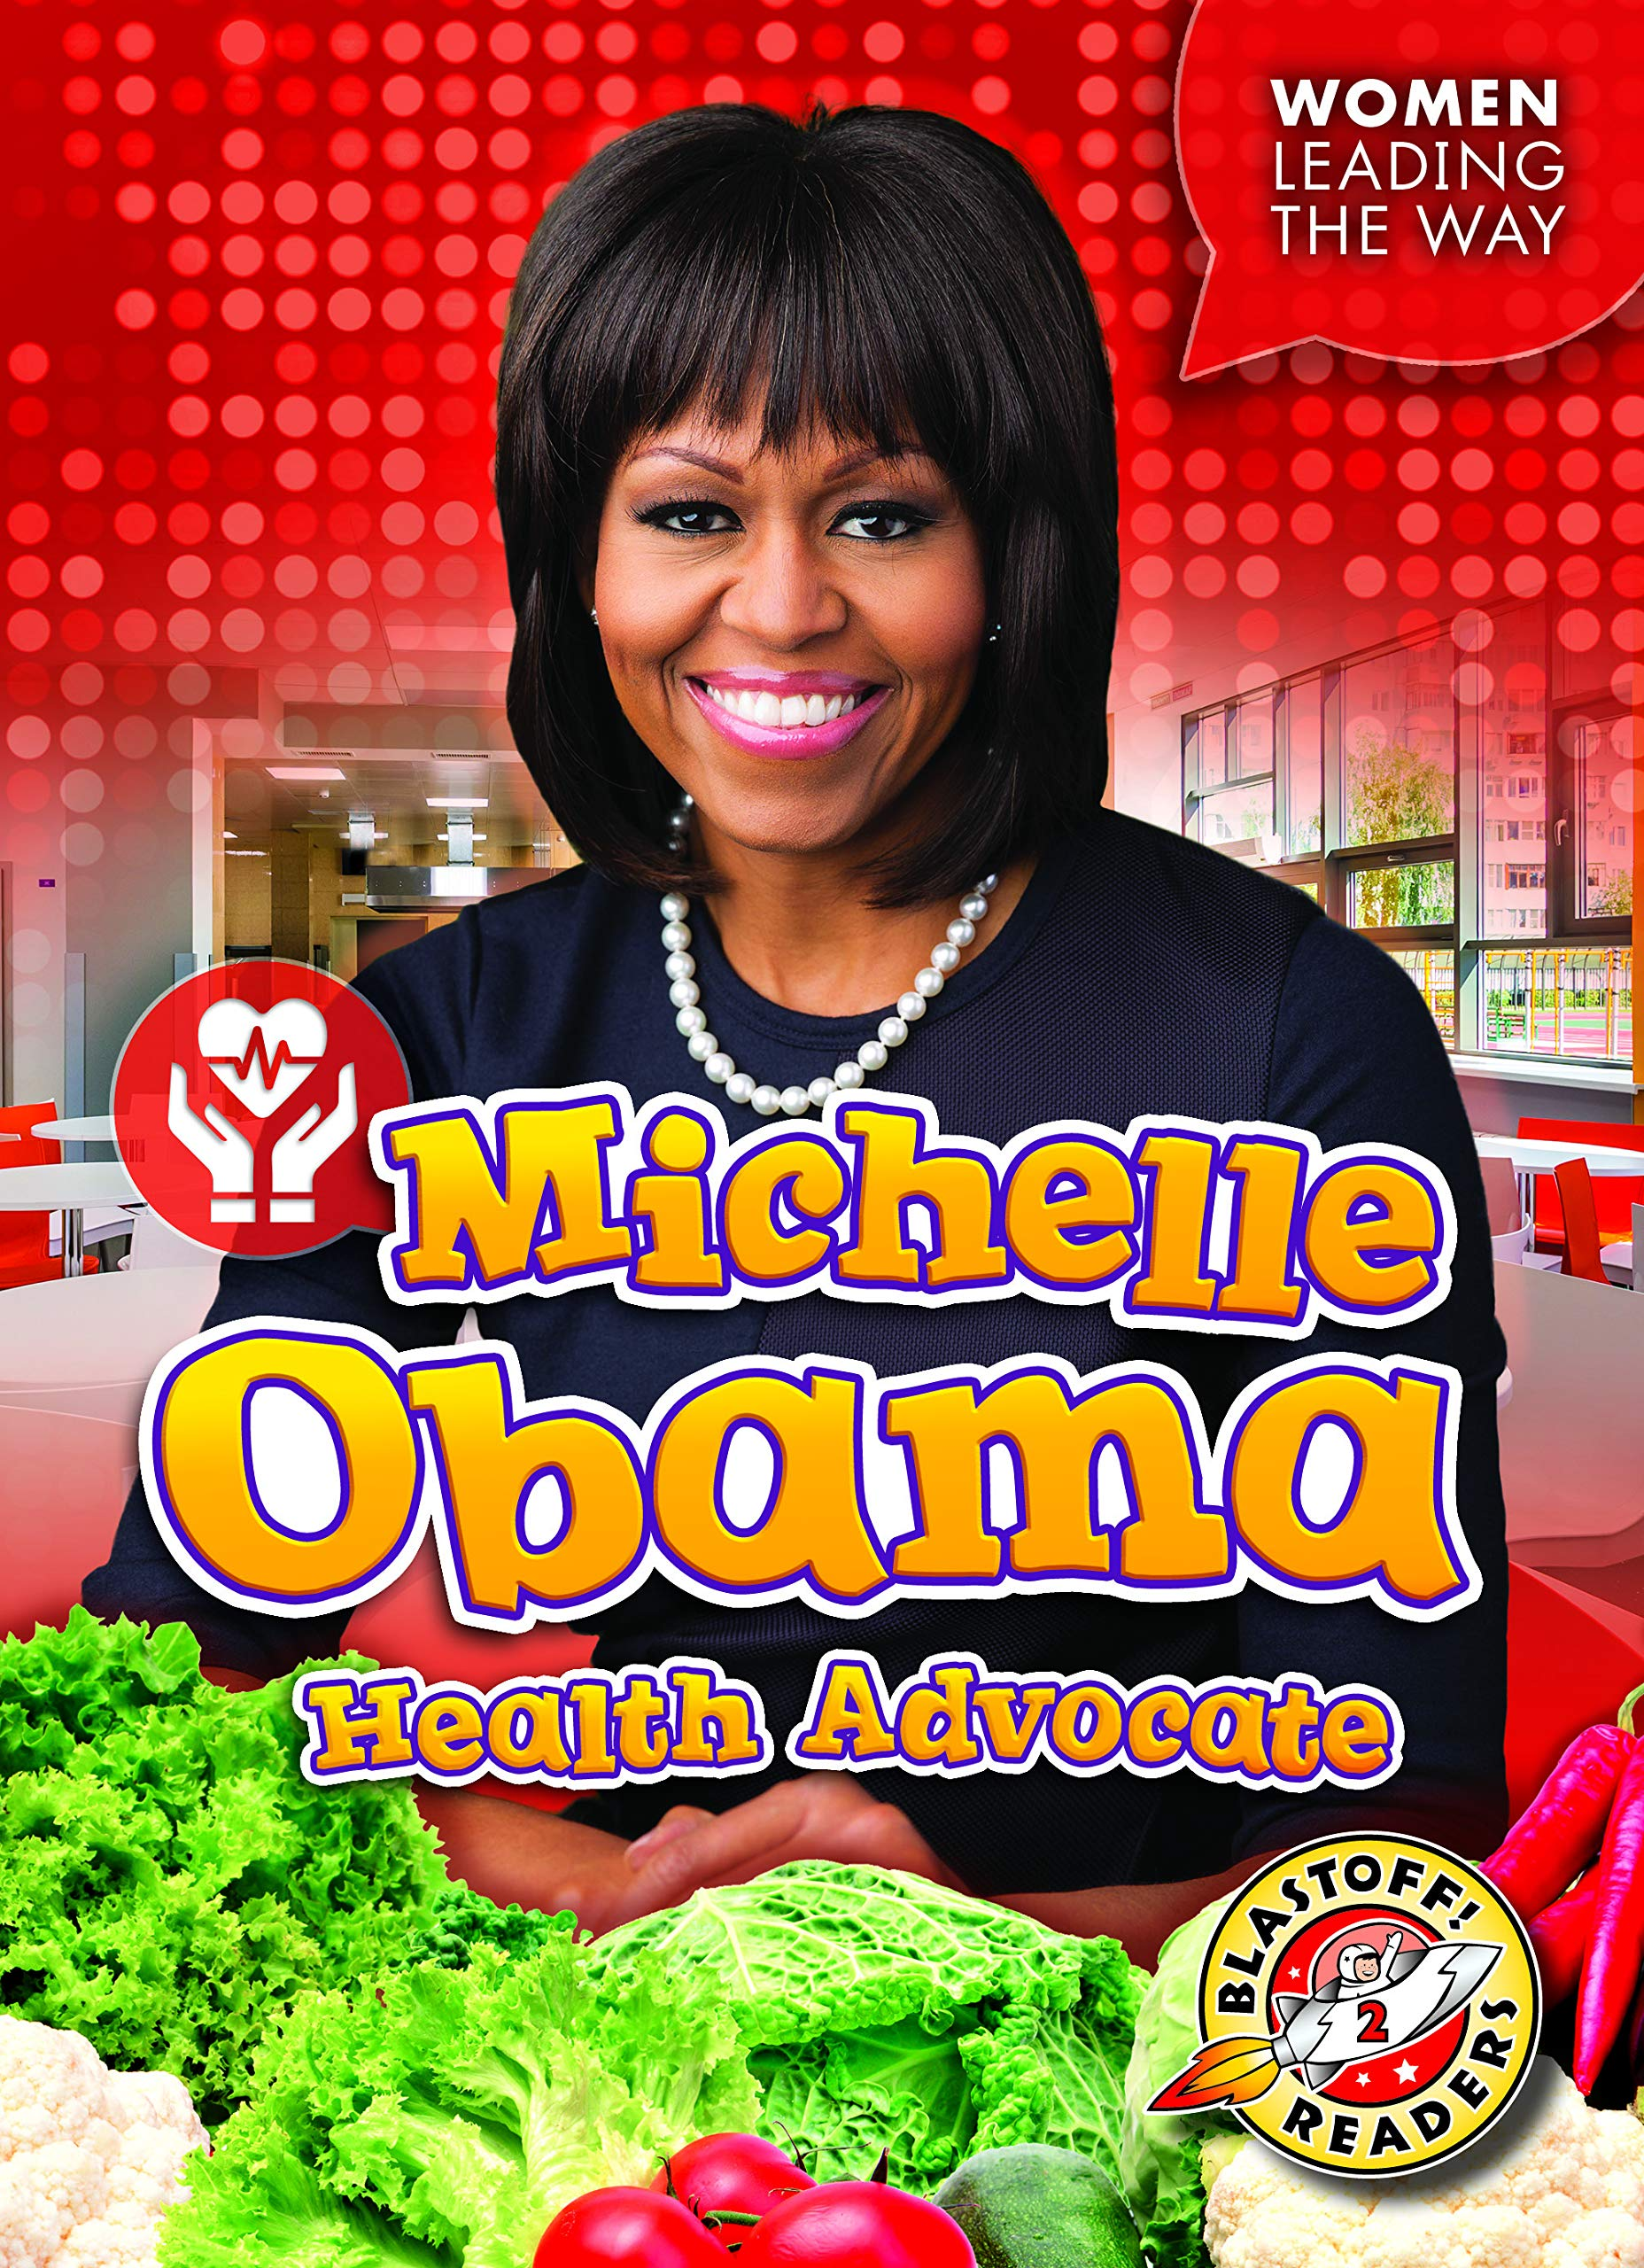 Michelle Obama: Health Advocate (Women Leading the Way: Blastoff Readers. Level 2)